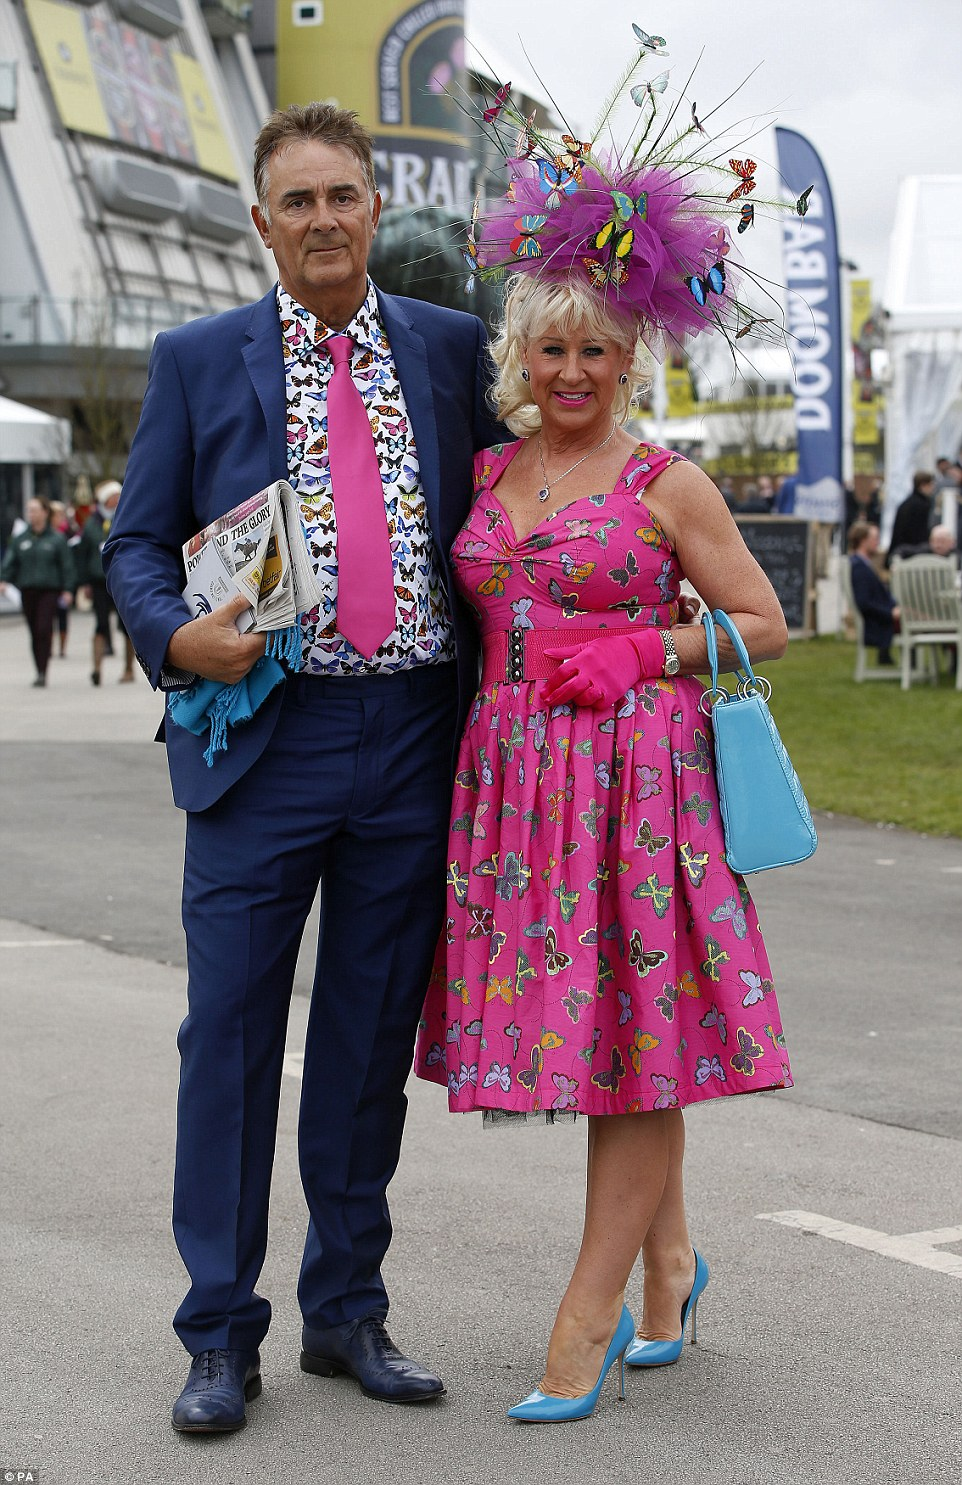 A couple ensured they stood out from the crowd by both rocking butterfly prints